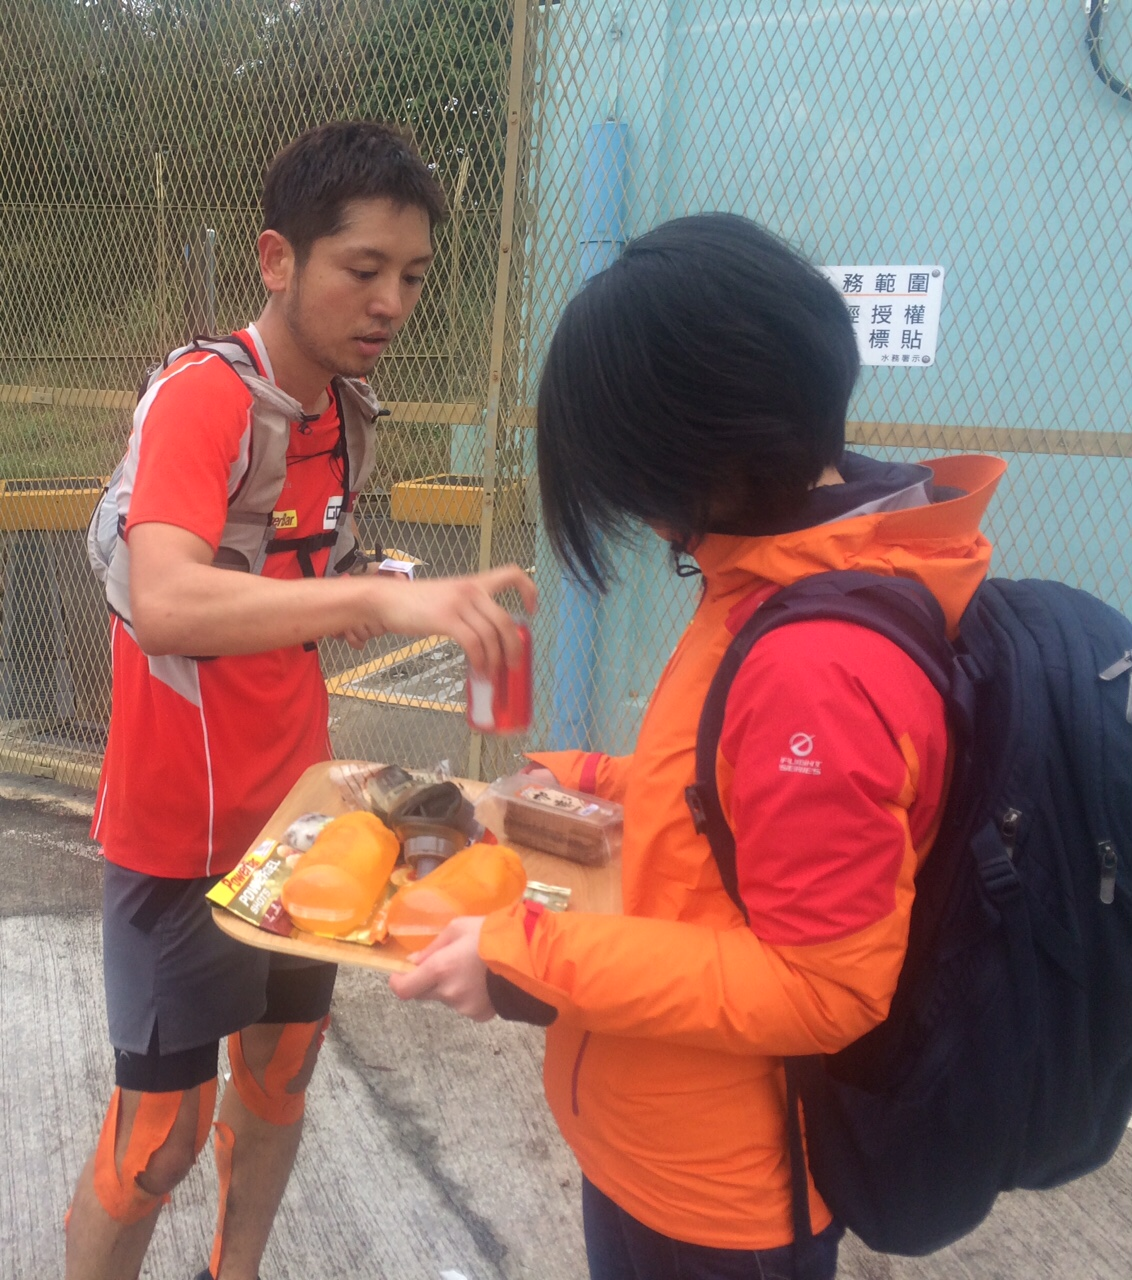 Kaito Kobayashi won the 50K, and had his private refreshment station the whole weekend